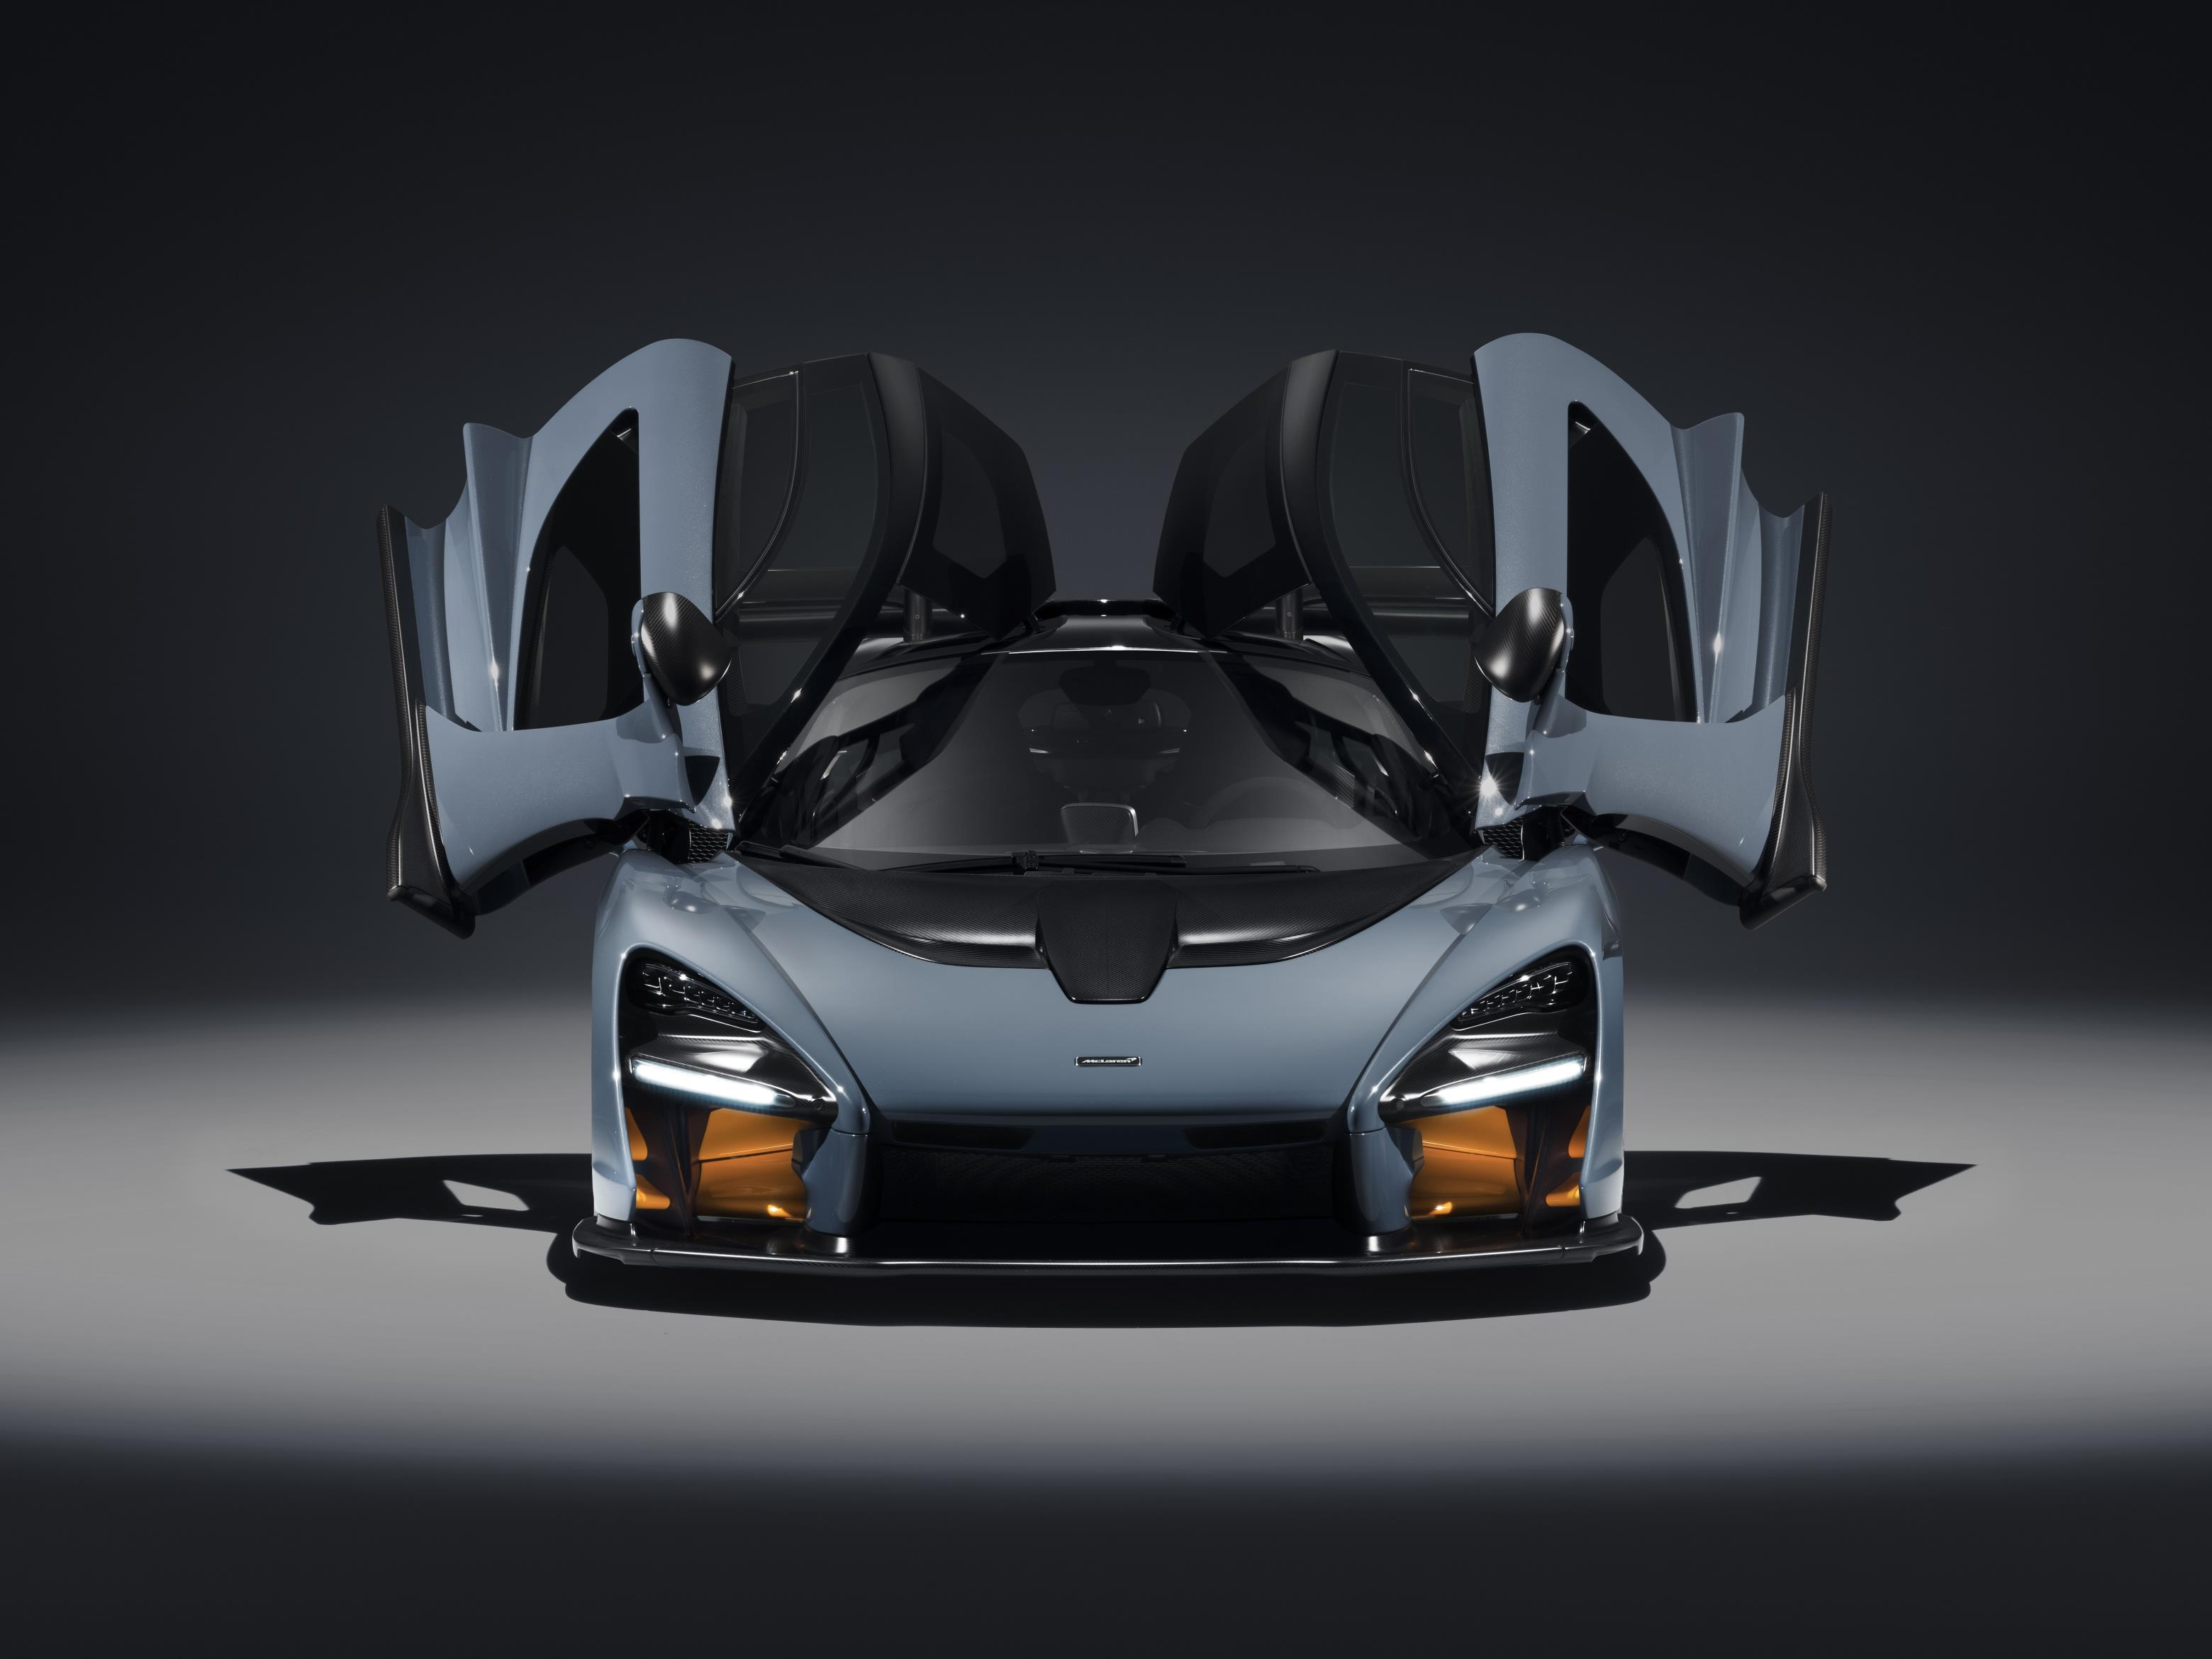 The McLaren Senna, in Victory Grey. All 500 examples of the British luxury sports car manufacturer's latest Ultimate Series vehicle have been assigned to their owners.